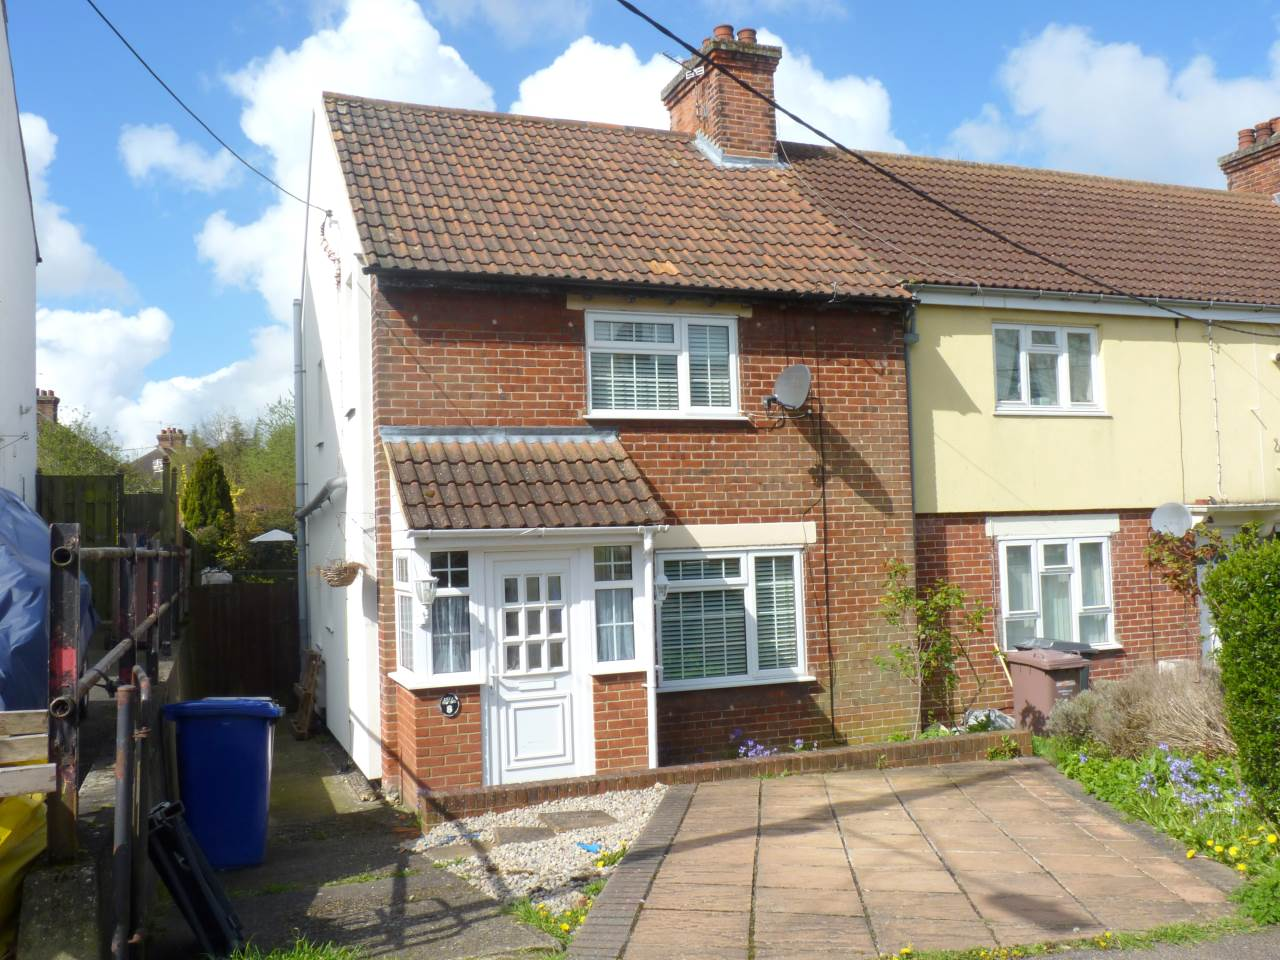 3 bed end-of-terrace-house to rent in Haverhill, CB9